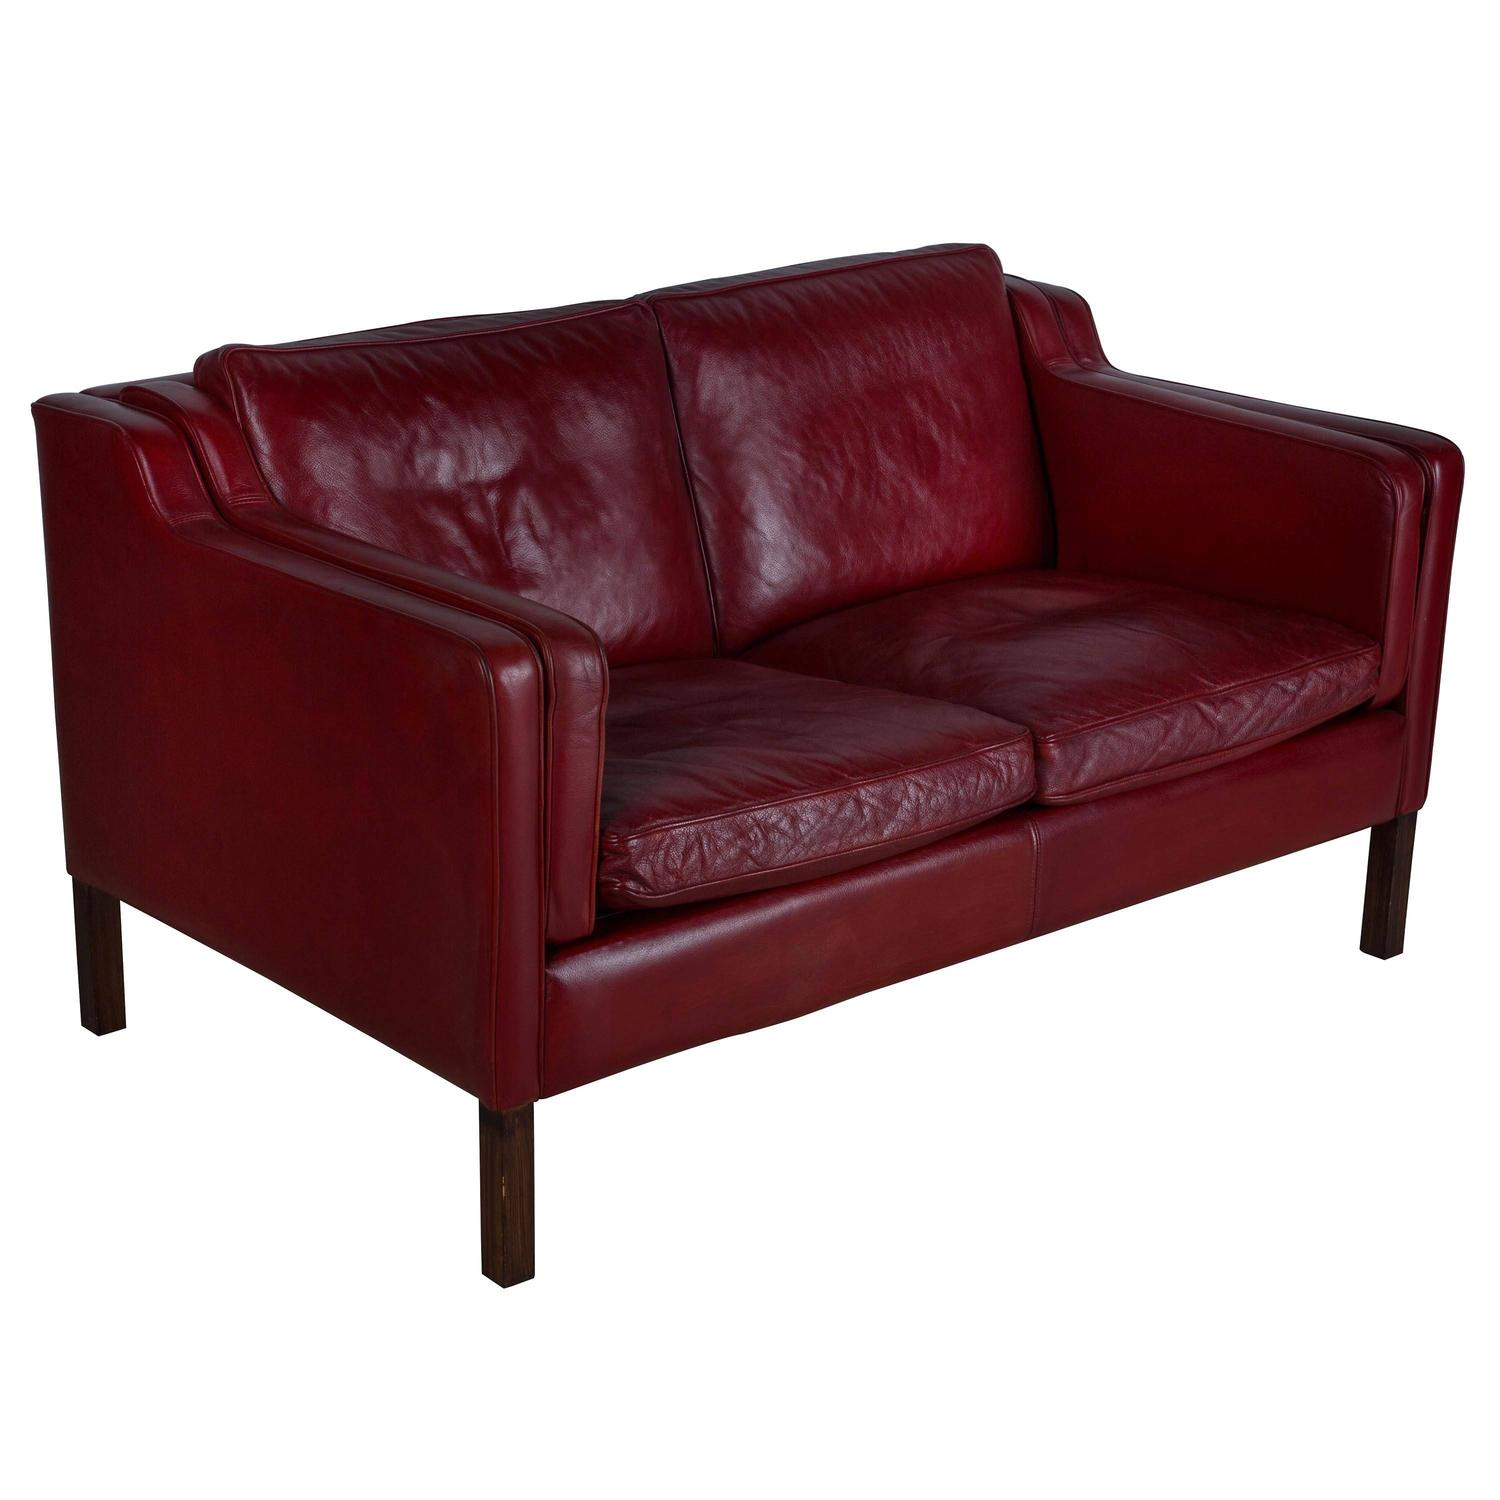 Leather Sofas Gloucestershire: Borge Mogensen Red Leather Sofa At 1stdibs